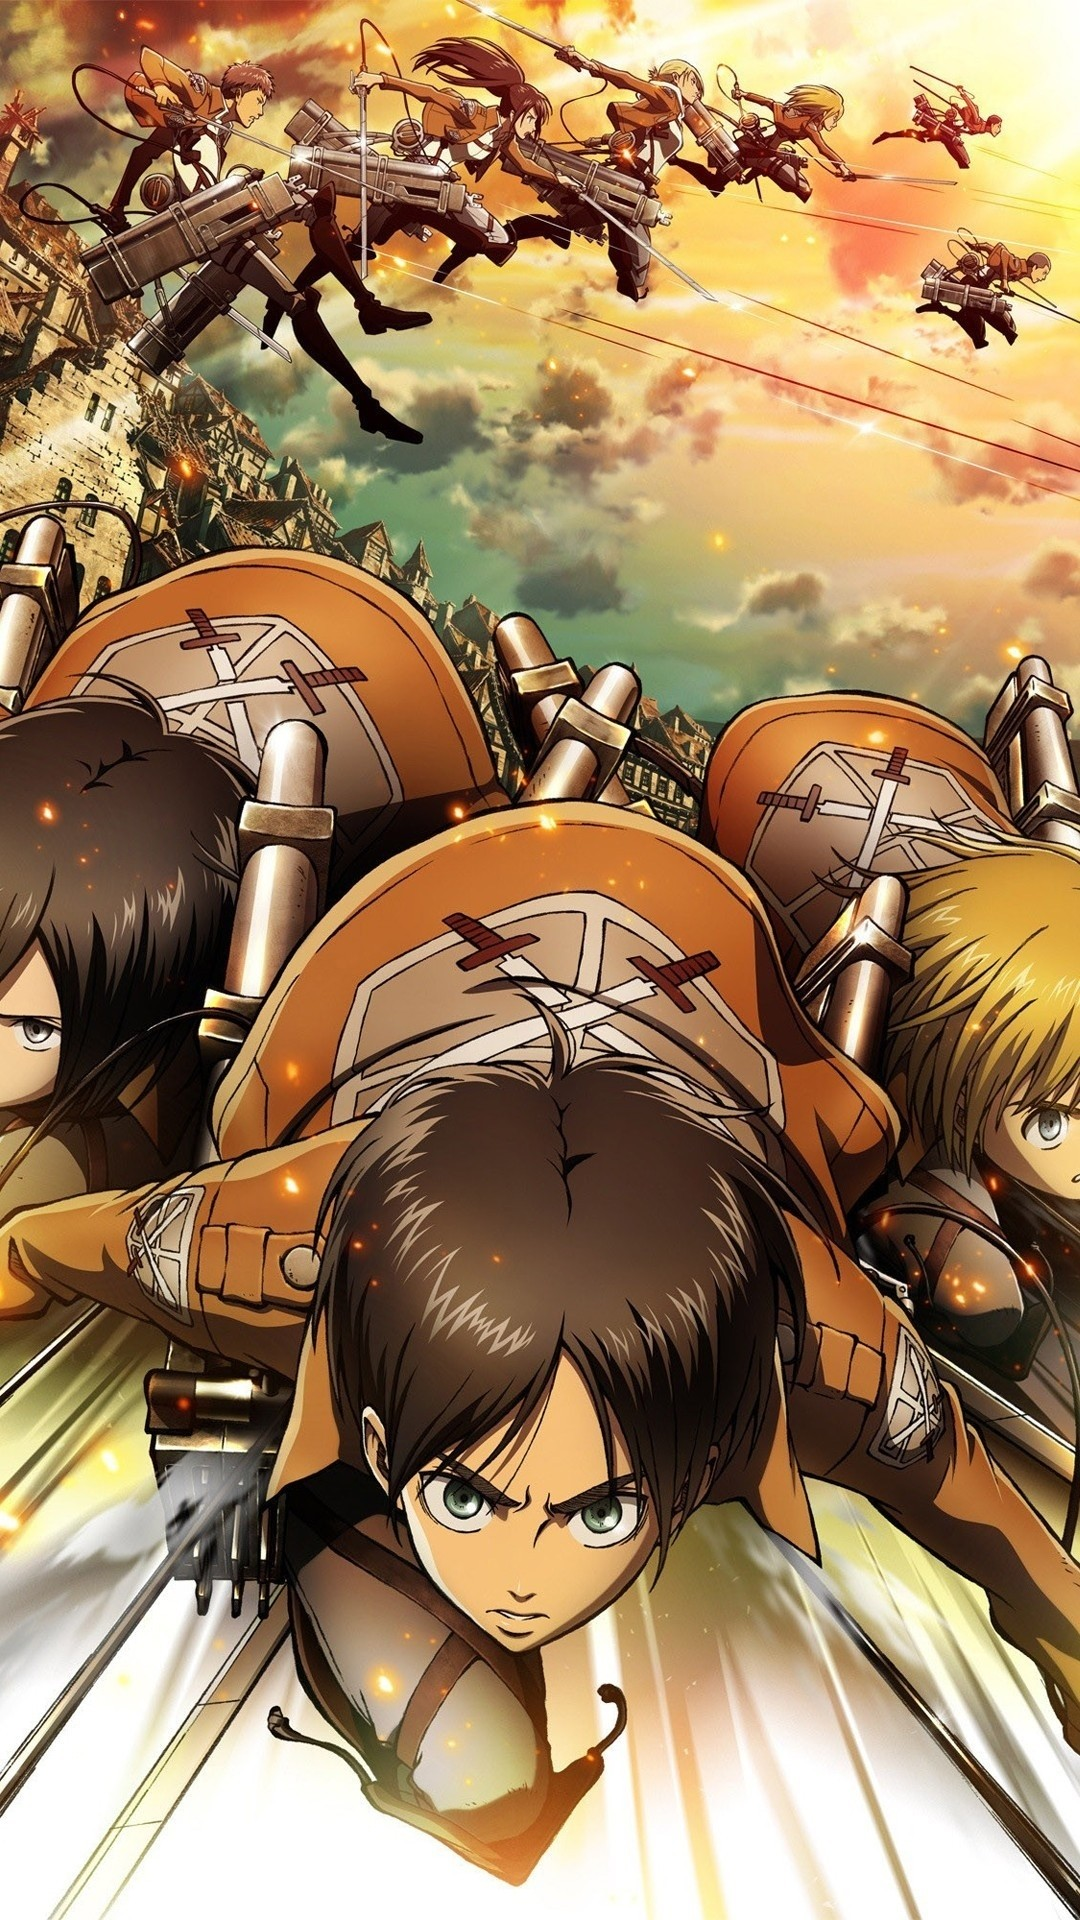 Attack On Titan Iphone Wallpaper 235711 Iphone Attack On Titan 471766 Hd Wallpaper Backgrounds Download